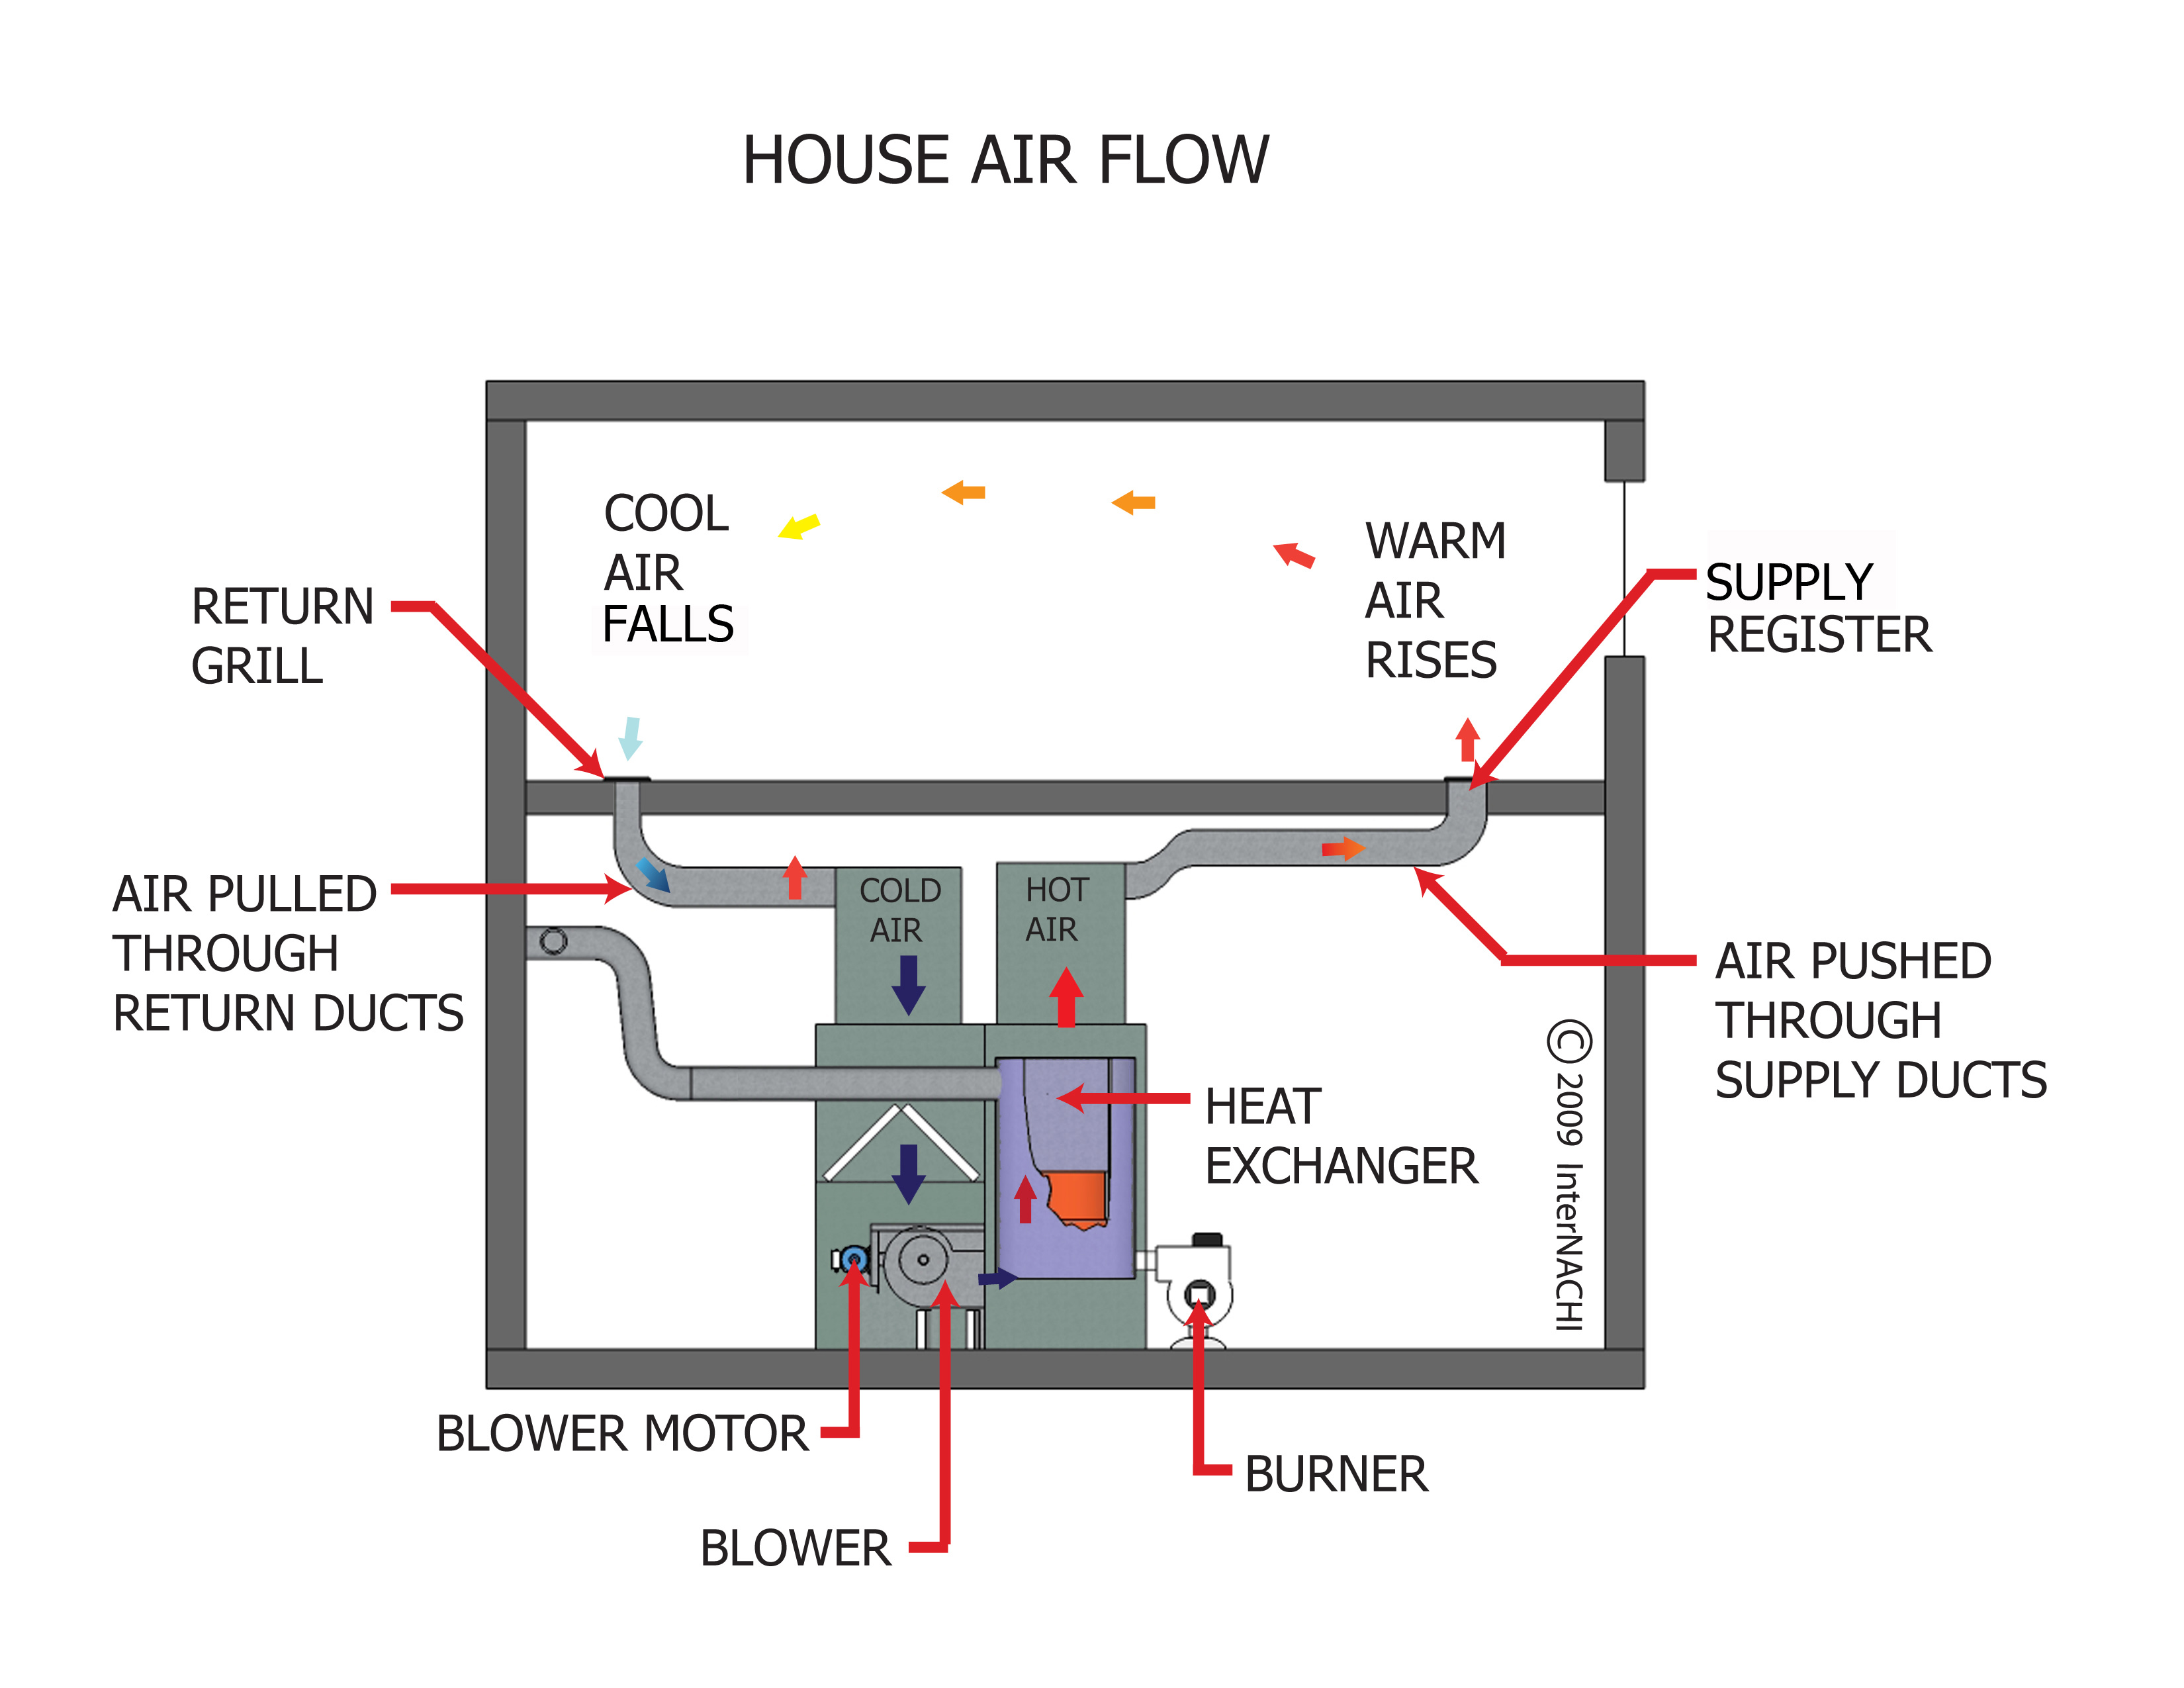 House Air Flow Diagram on house fan wiring diagram